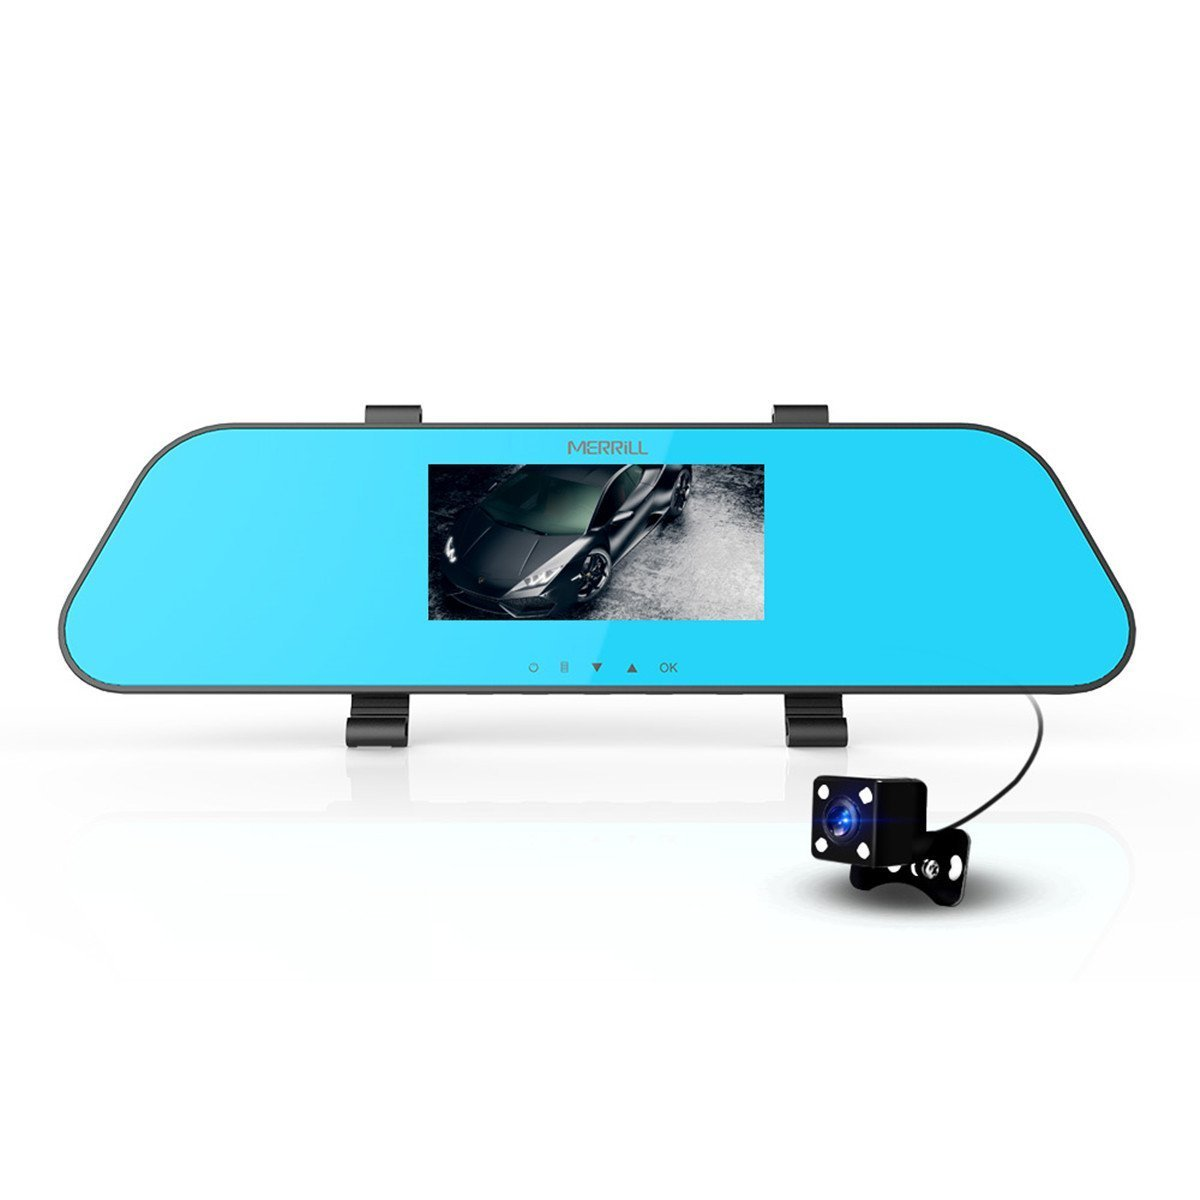 Merrill Dash Cam Dual Cameras 4.3' 1080P 12 Mega Pixel 140° Wide Angle Rear View Mirror Parking Monitor G-sensor Eye-caring Blue Glass16GB TF Card H433N